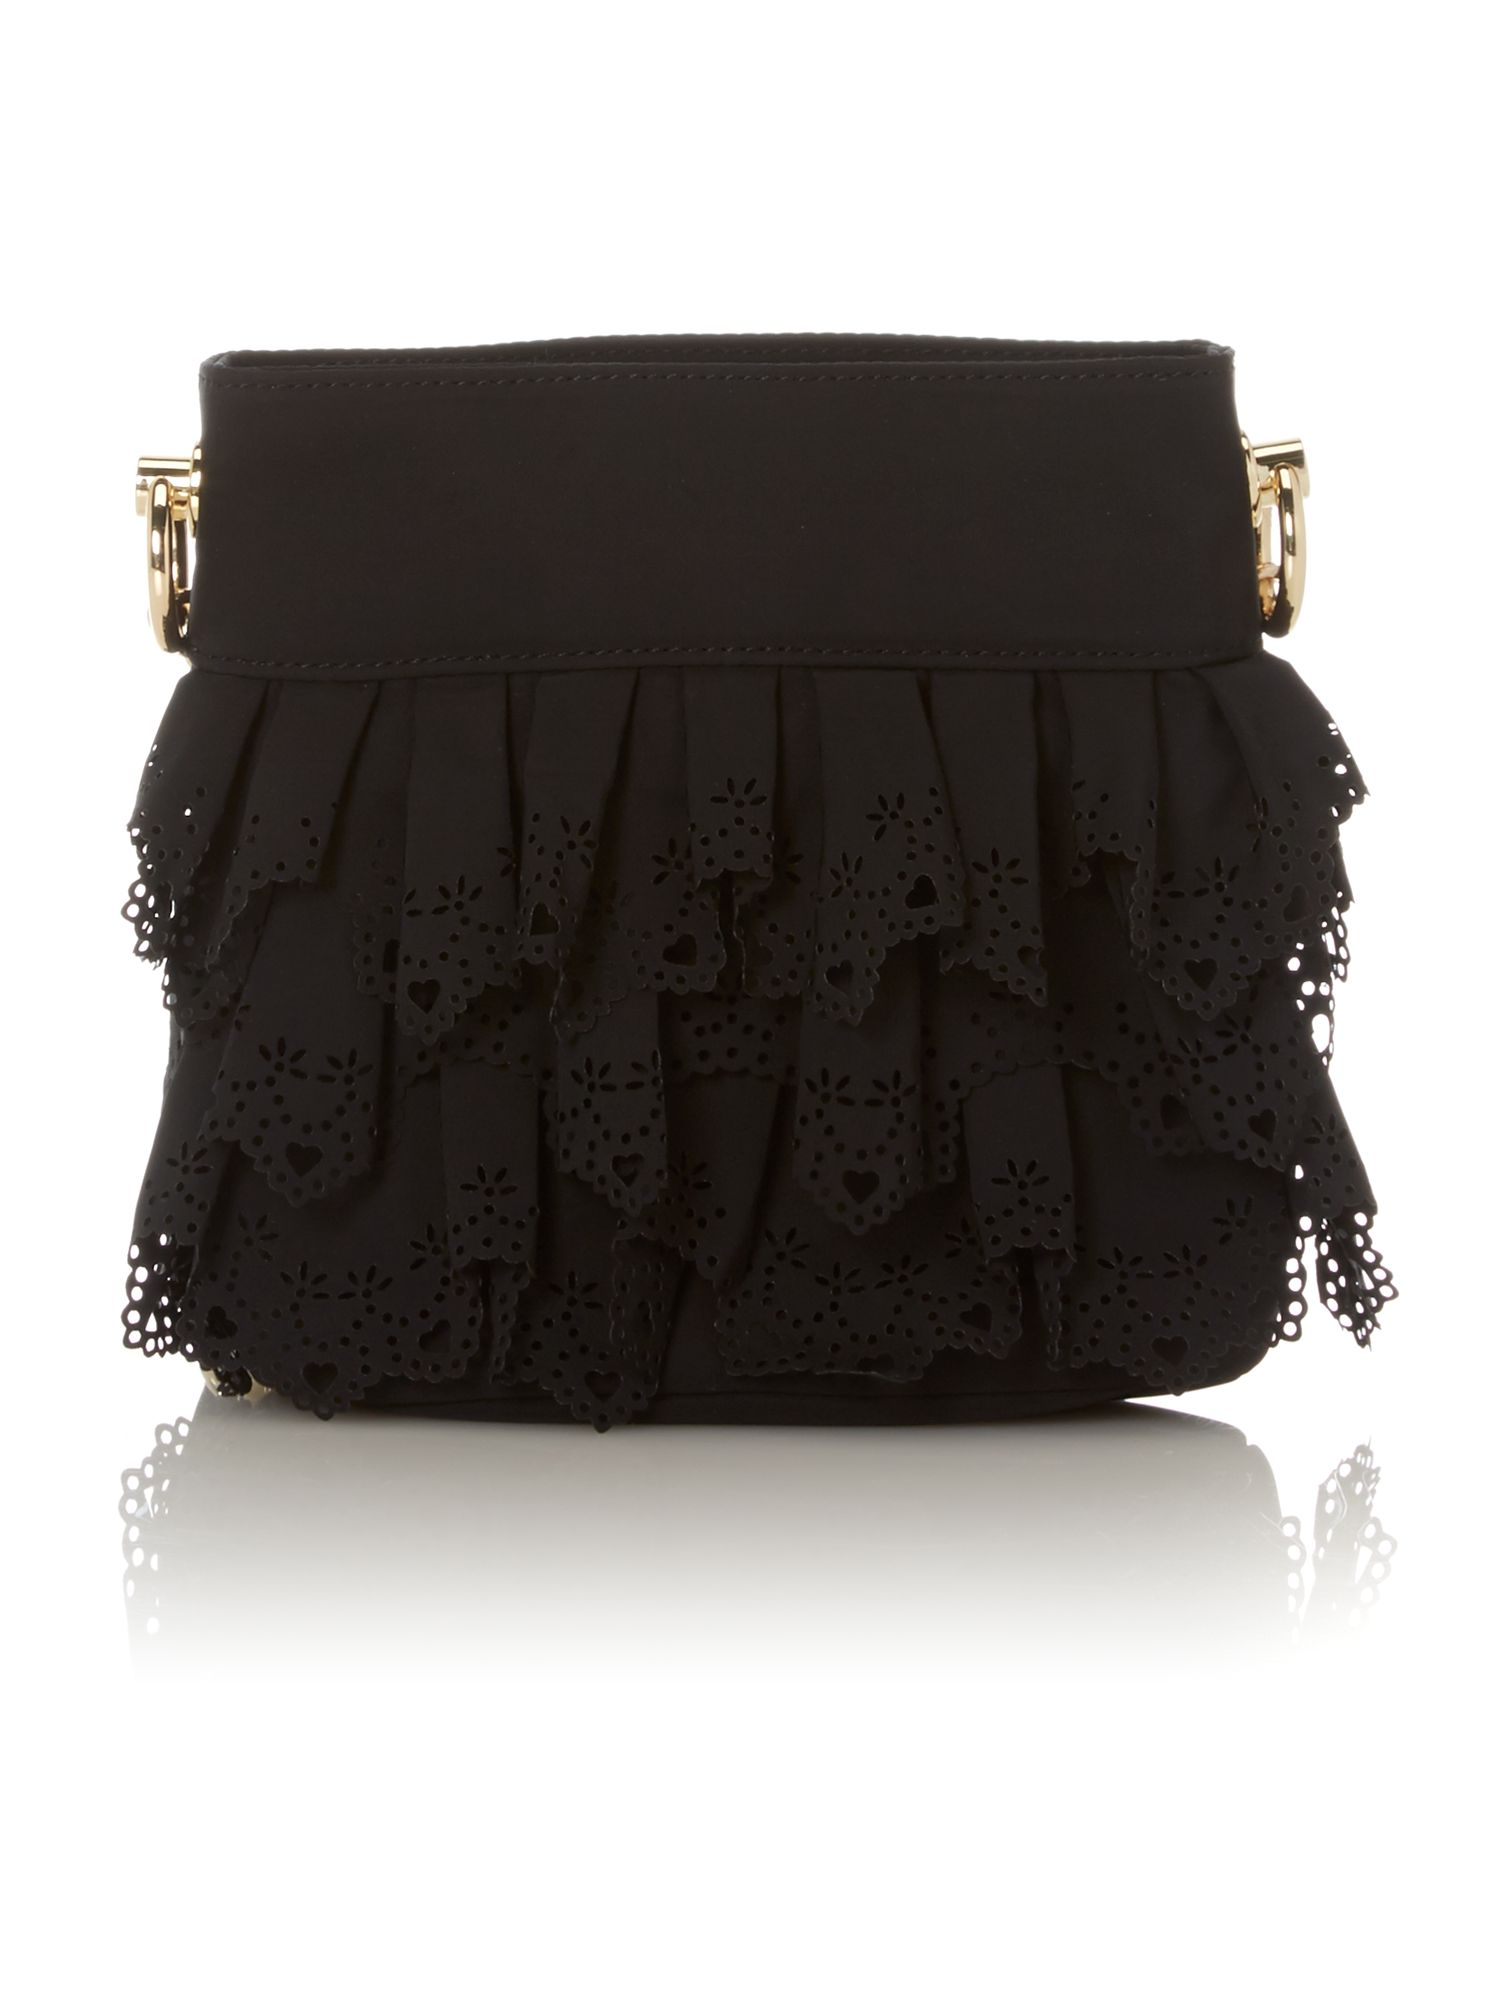 Small black lace cross body bag